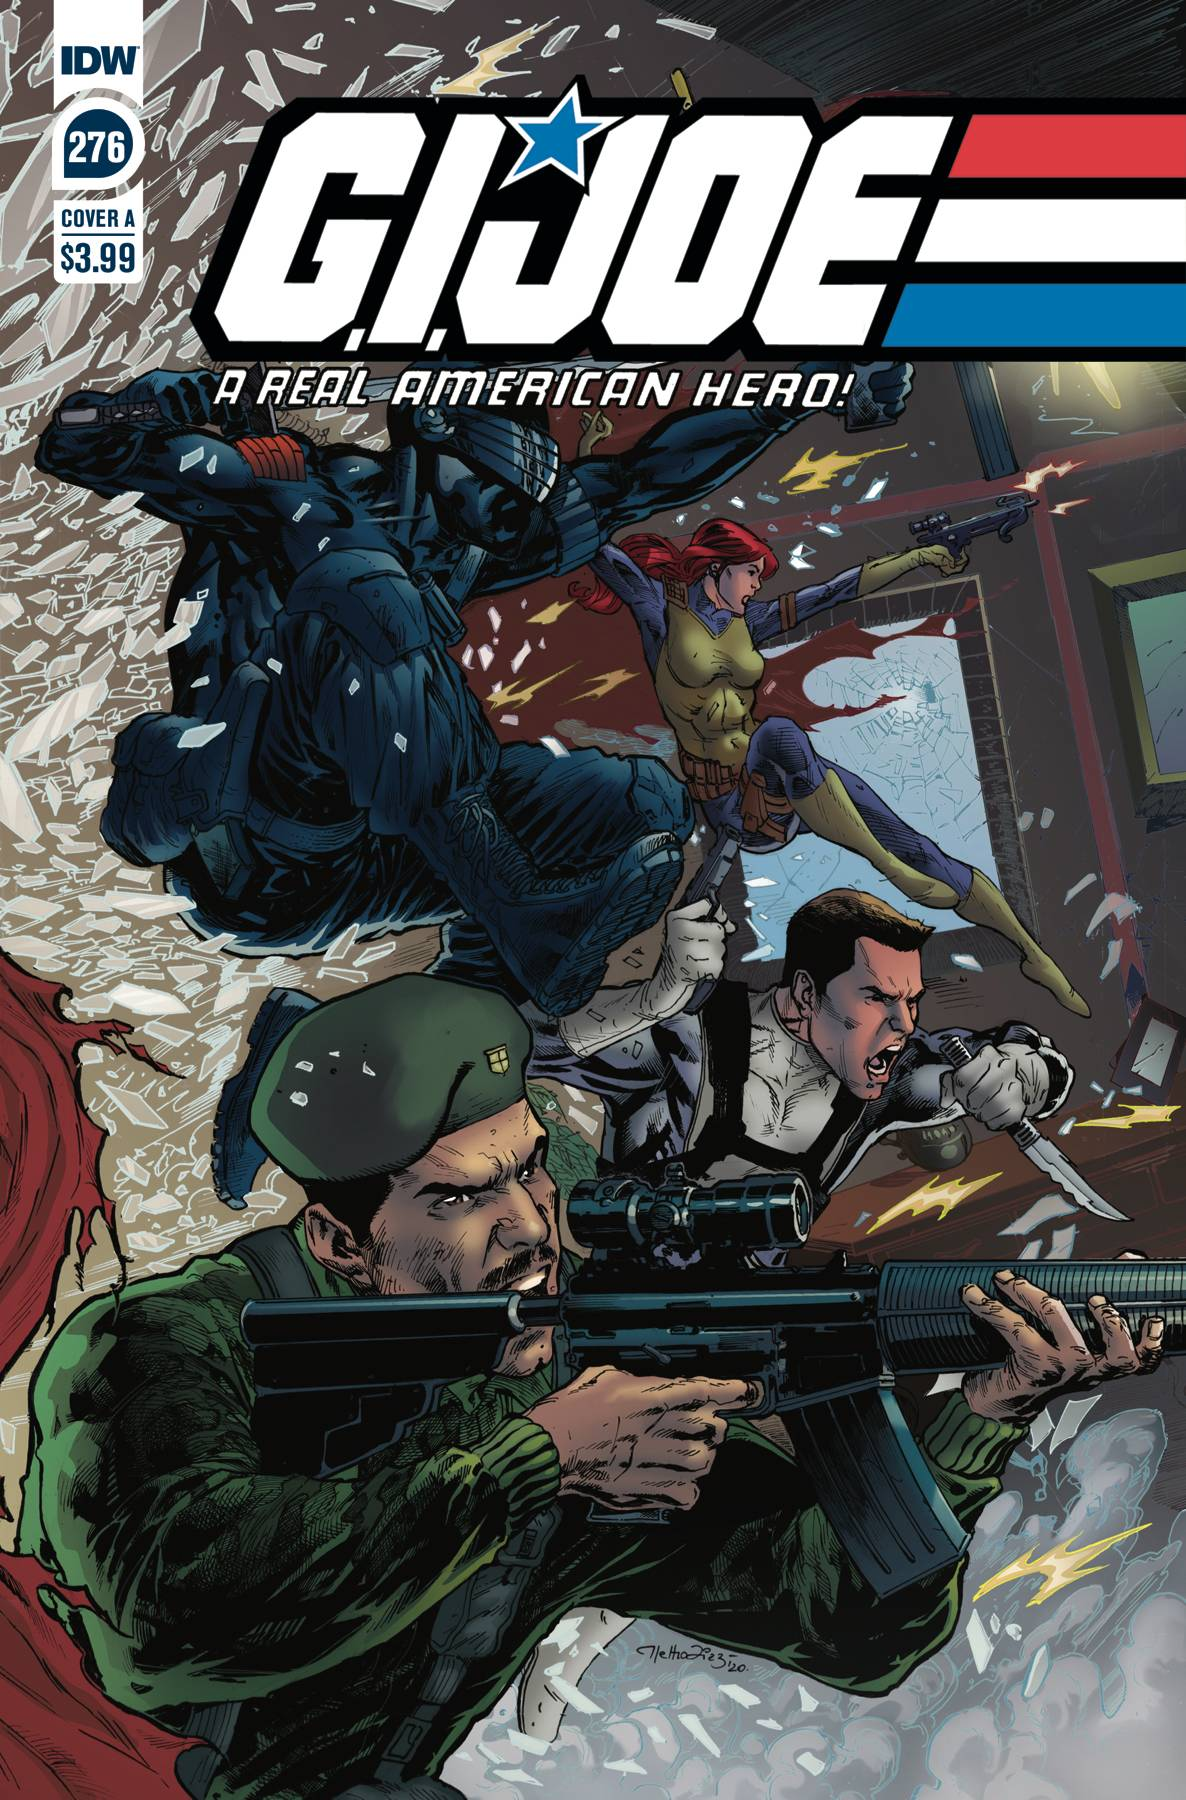 GI JOE A REAL AMERICAN HERO #276 CVR A DIAZ